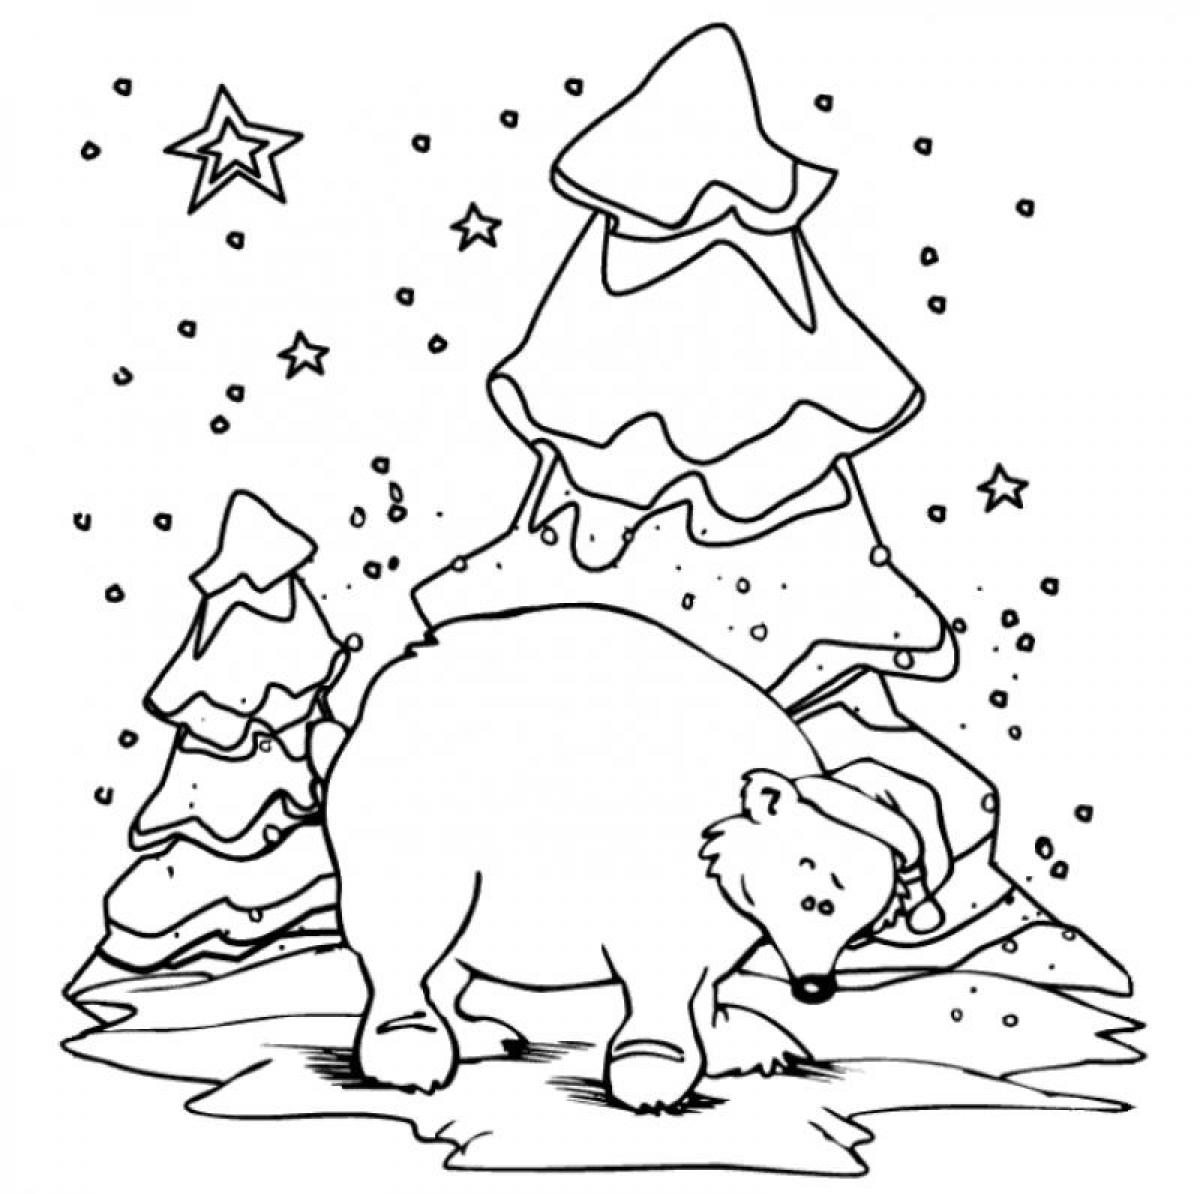 Polar Bear Cub Coloring Pages At Getdrawings